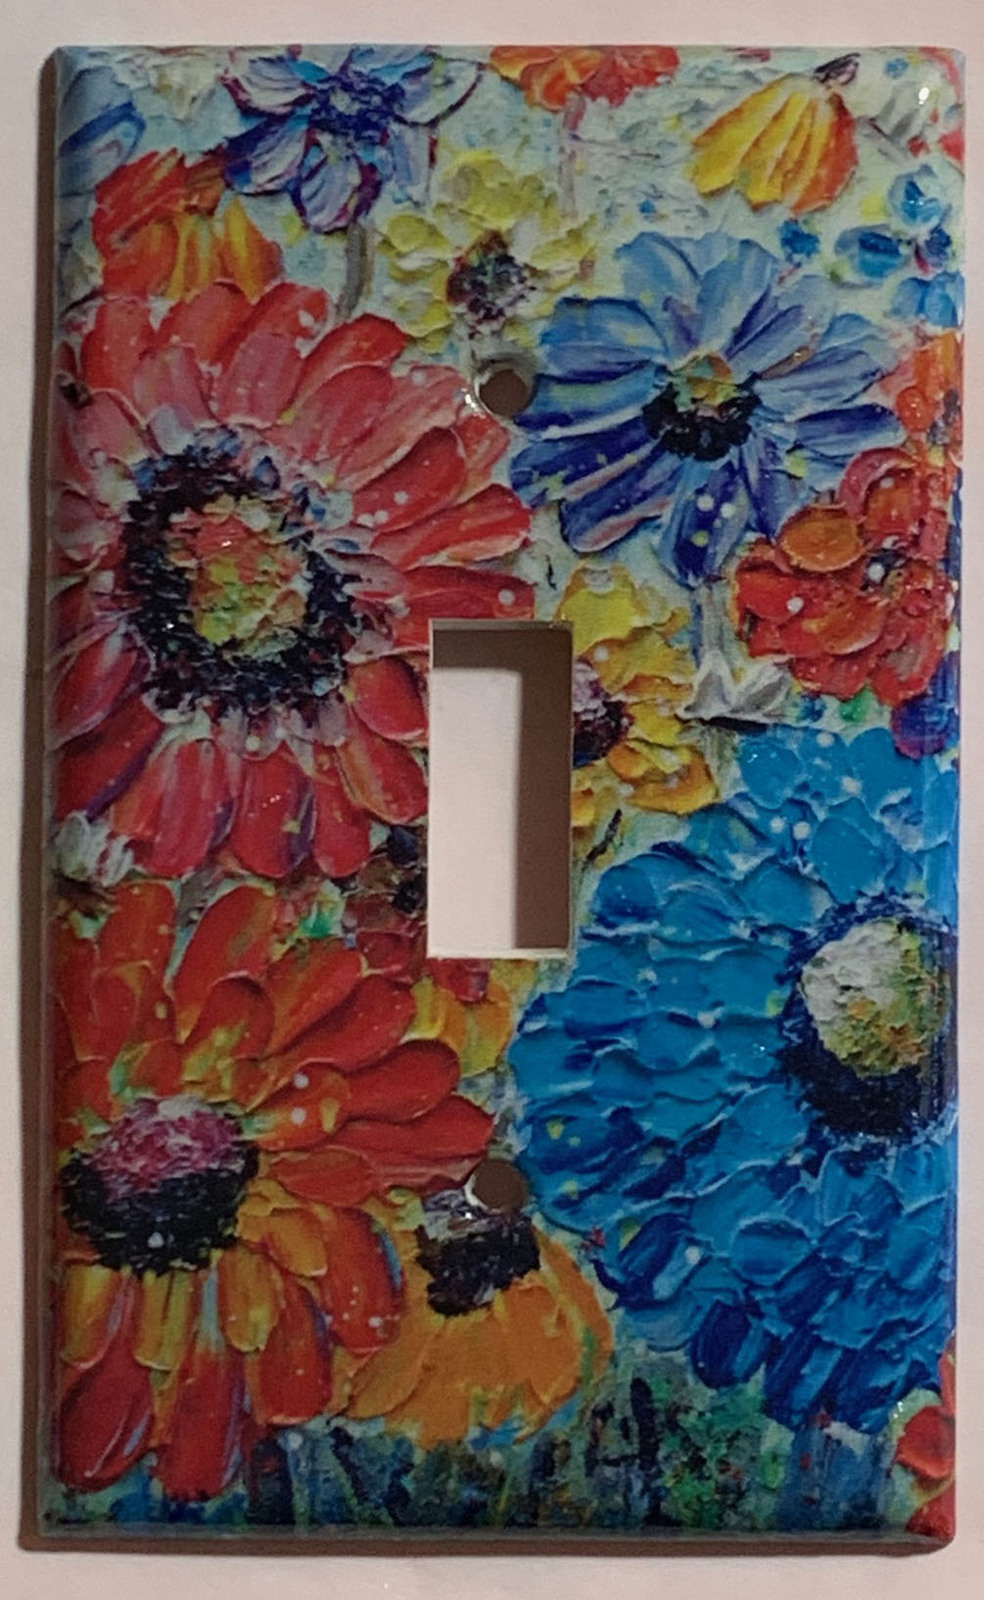 Flowers oil painting Art image Light Switch Outlet wall Cover Plate Home Decor